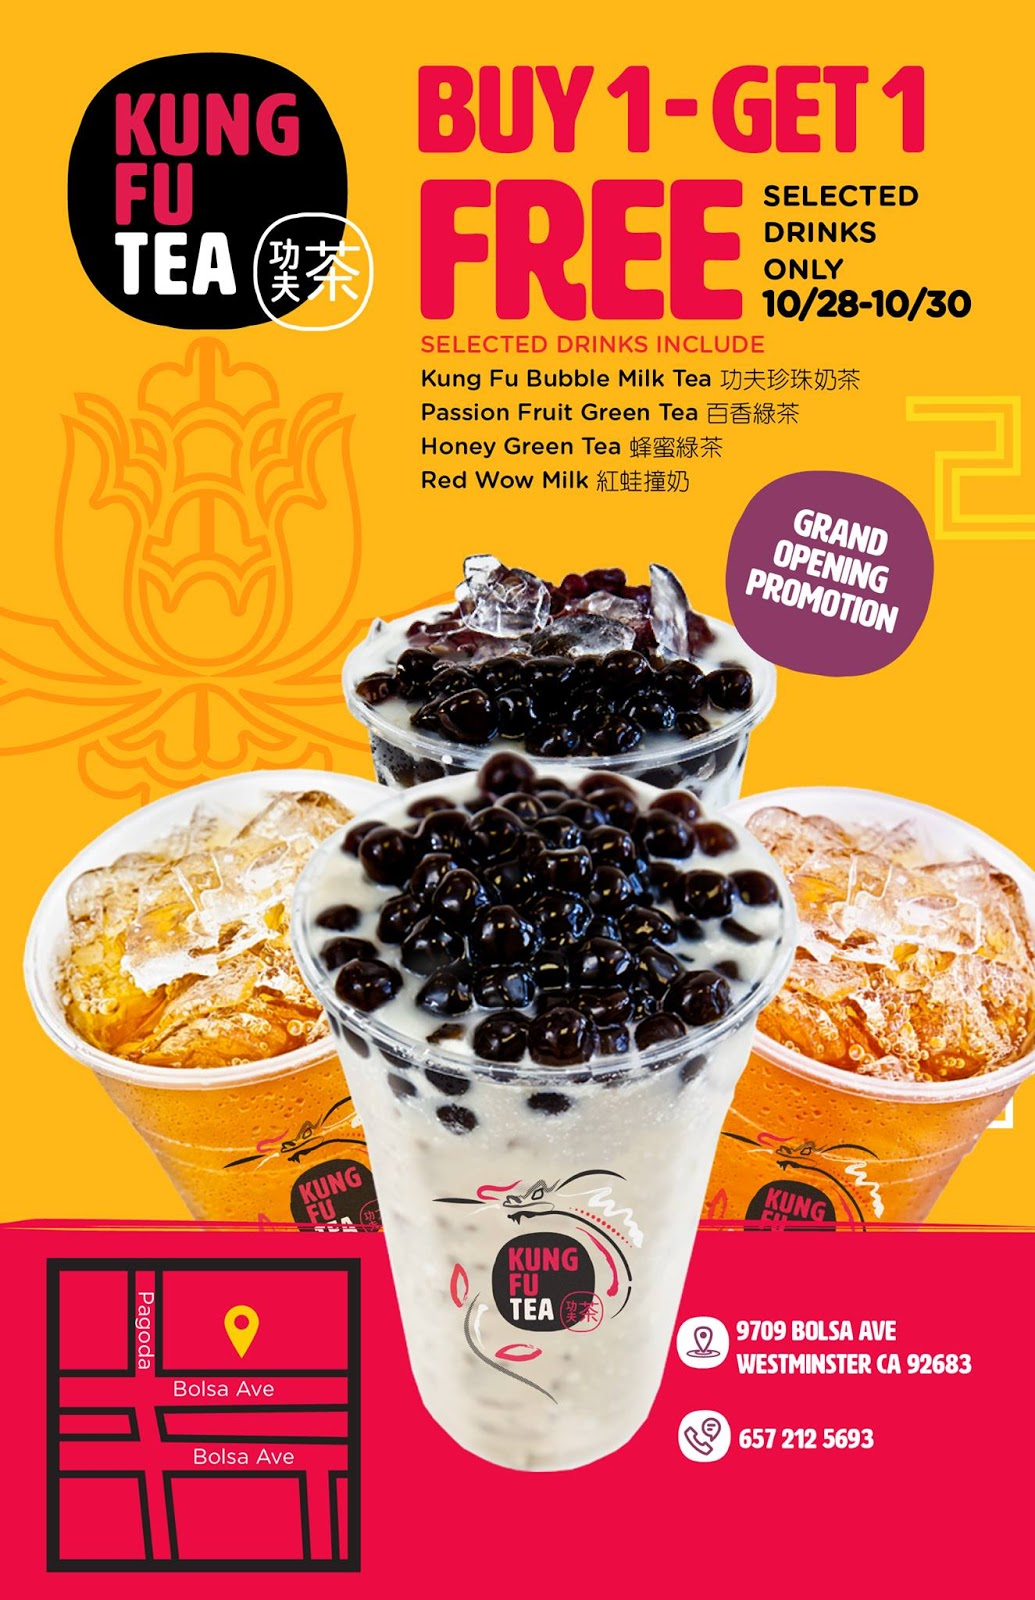 Oct. 28 - 30 | BOGO Free Drinks for Grand Opening of Kung Fu Tea - Westminster